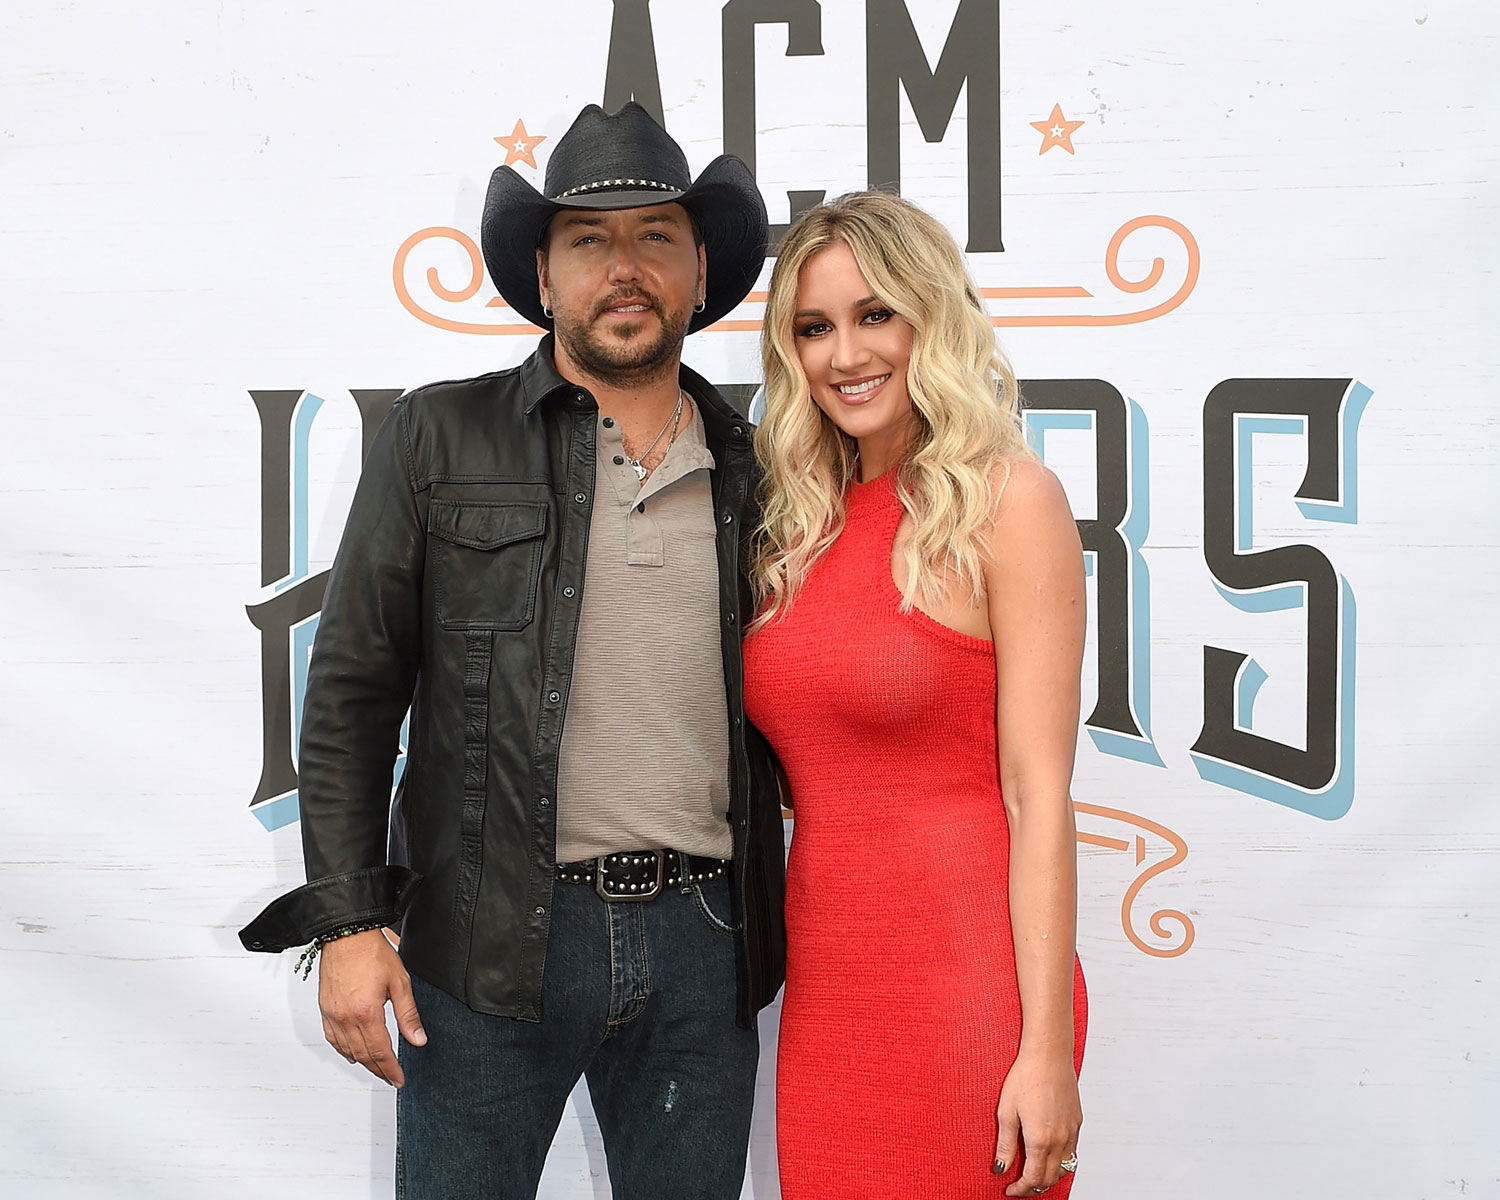 Jason Aldean Shares Why He Wears A Rubber Wedding Band